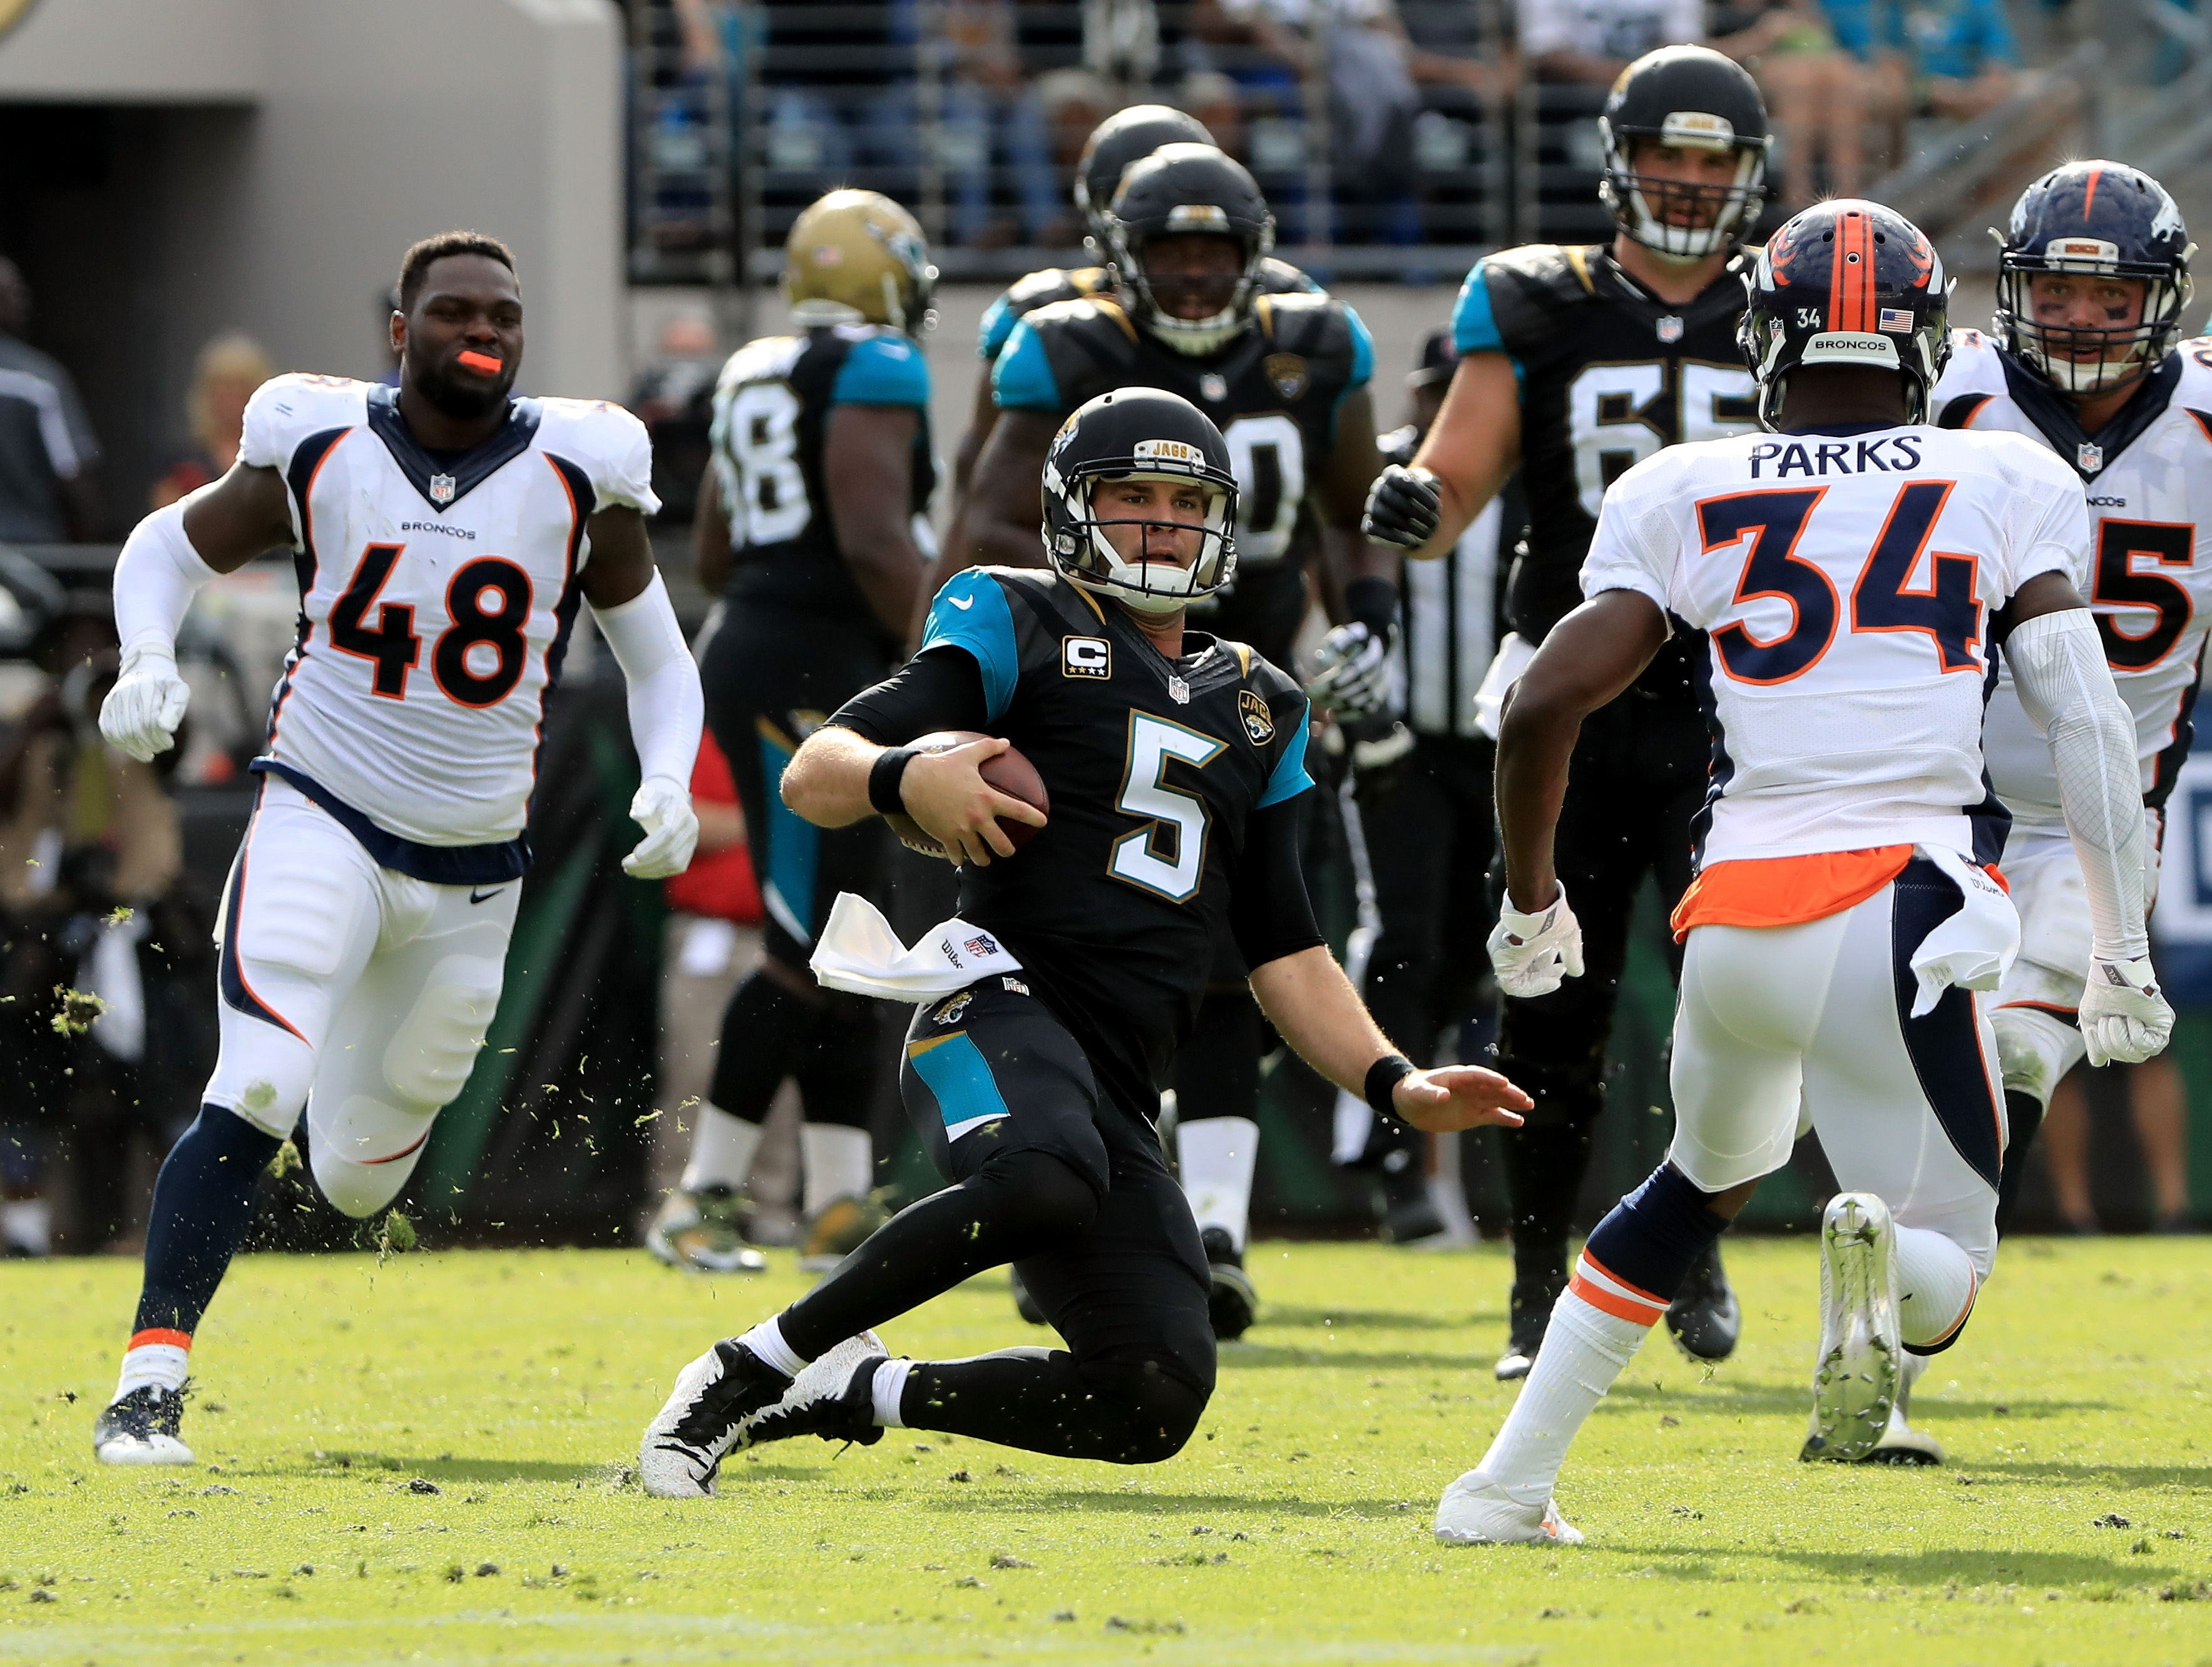 JACKSONVILLE, FL - DECEMBER 04: Blake Bortles #5 of the Jacksonville Jaguars slides after running for yardage as Shaquil Barrett #48 and Will Parks #34 of the Denver Broncos close in at EverBank Field on December 4, 2016 in Jacksonville, Florida. (Photo by Sam Greenwood/Getty Images)